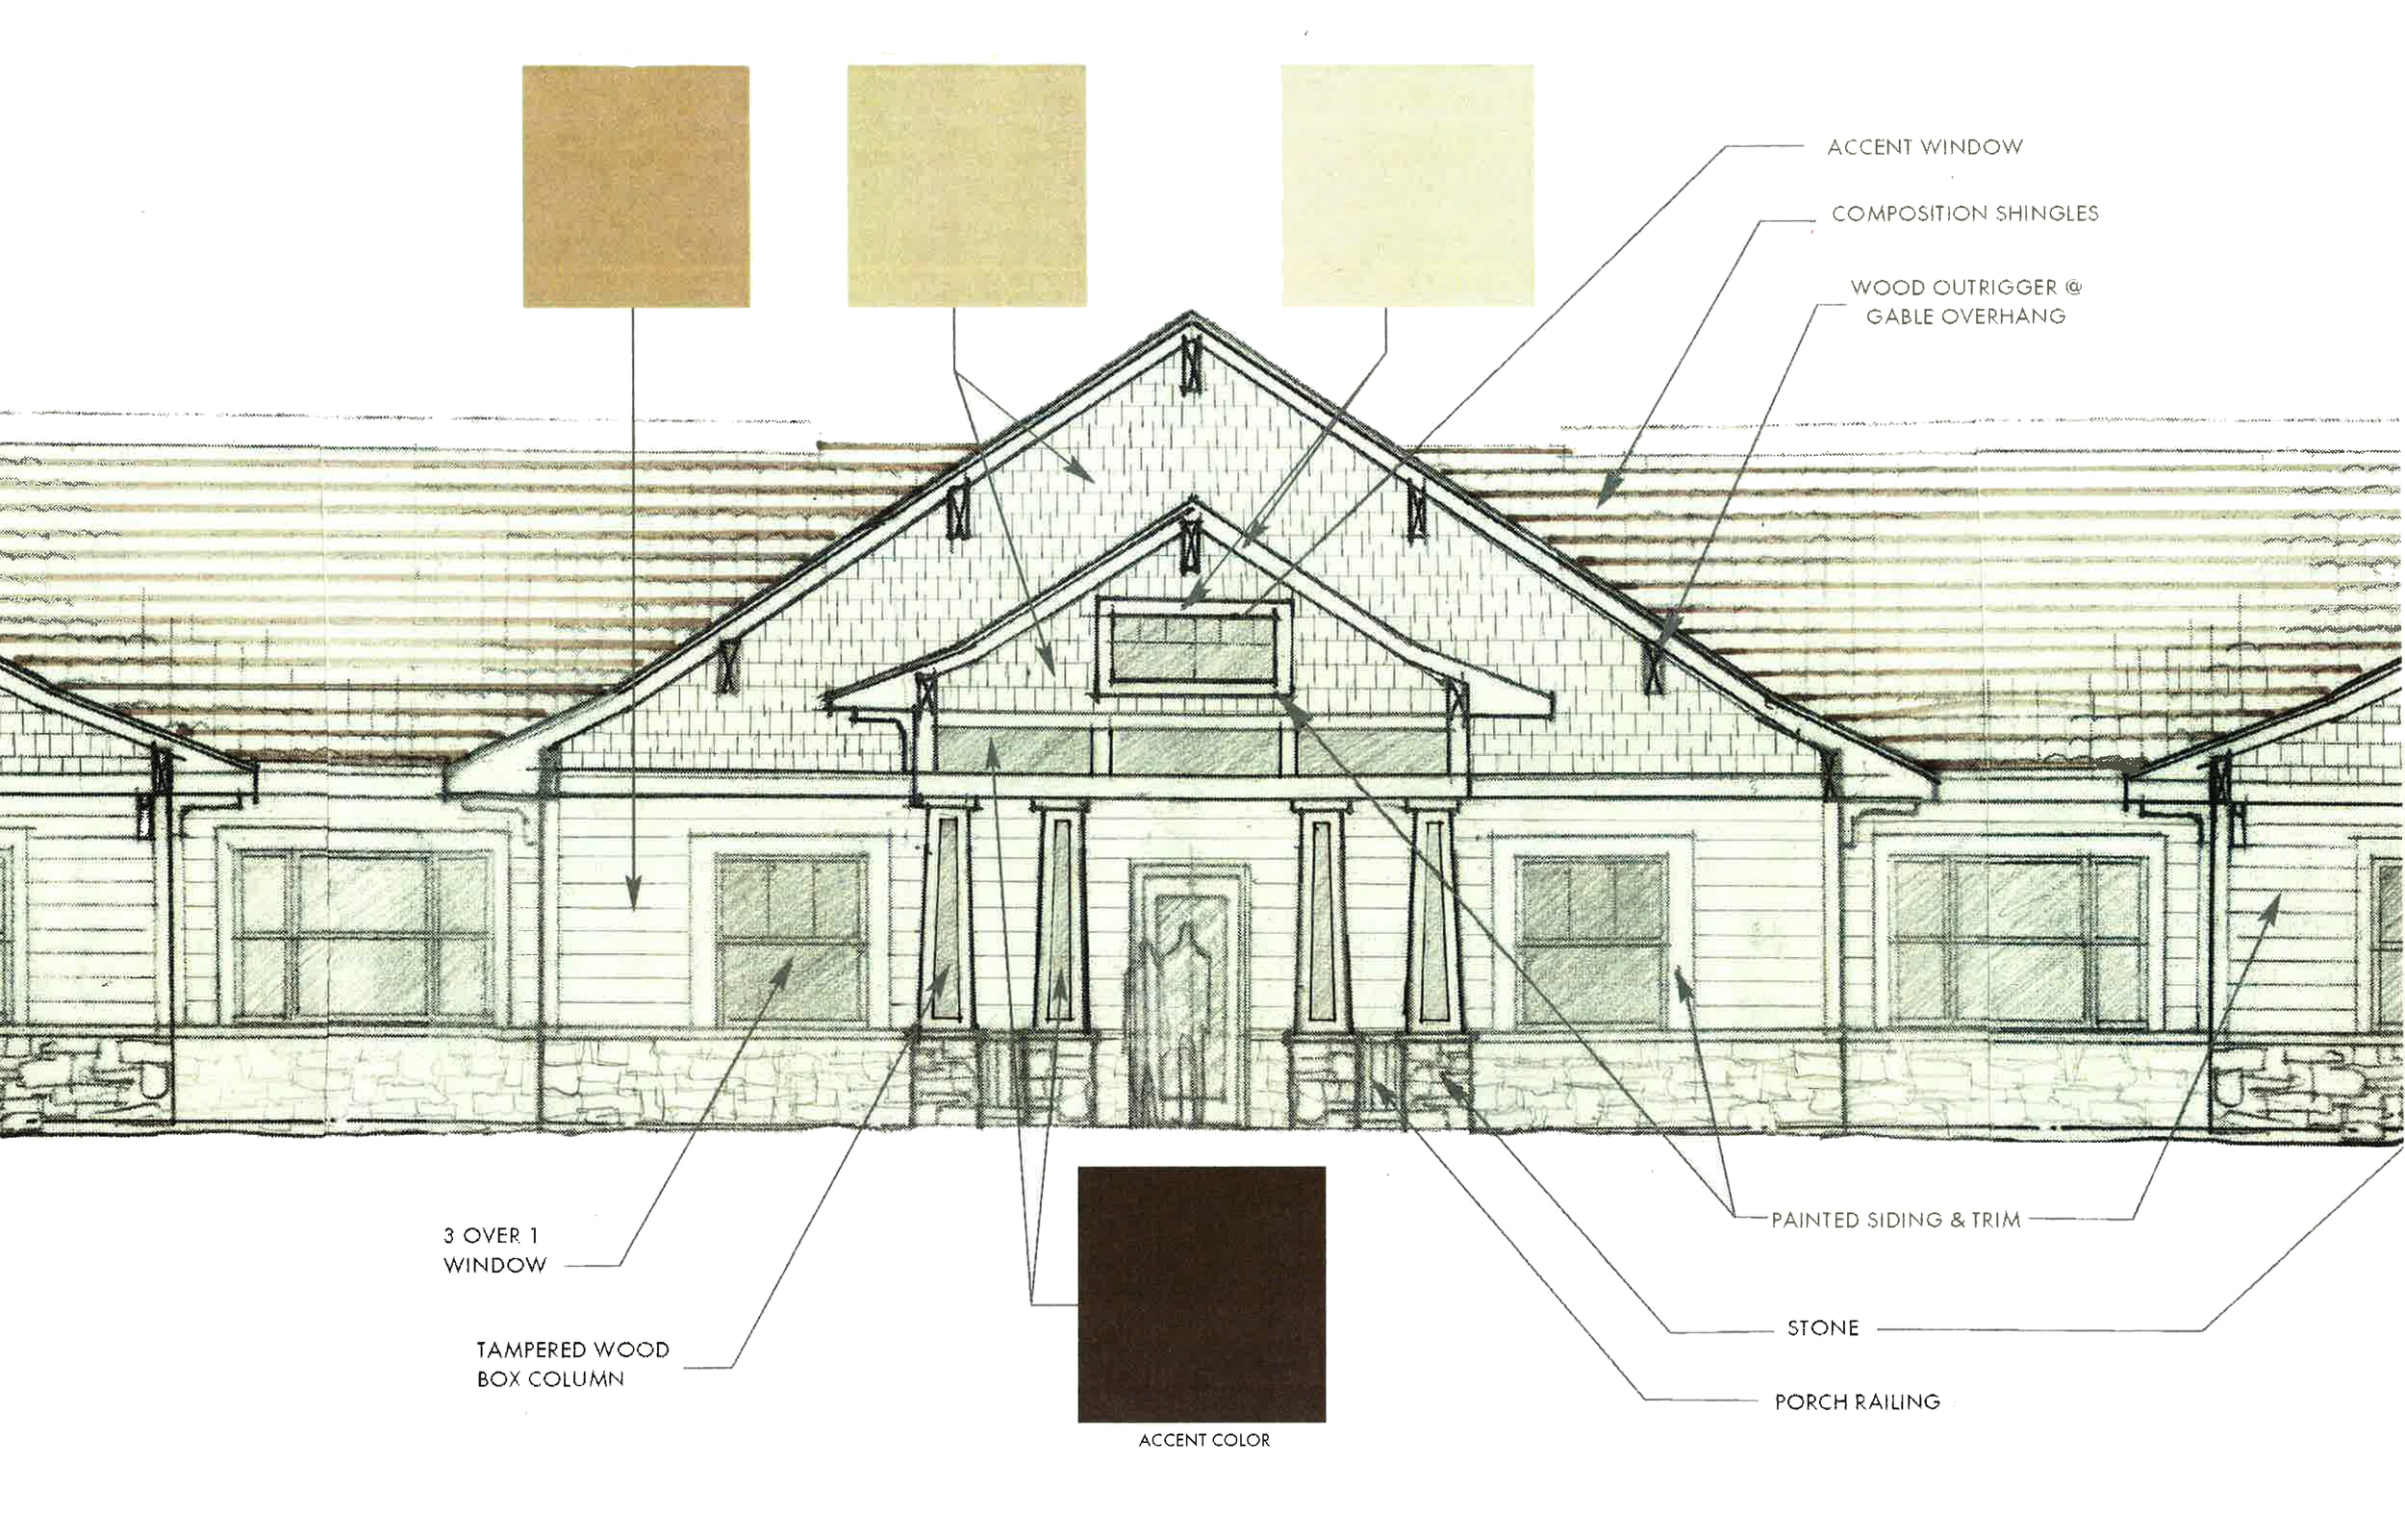 Autumn Leaves assisted living, exterior materials drawing